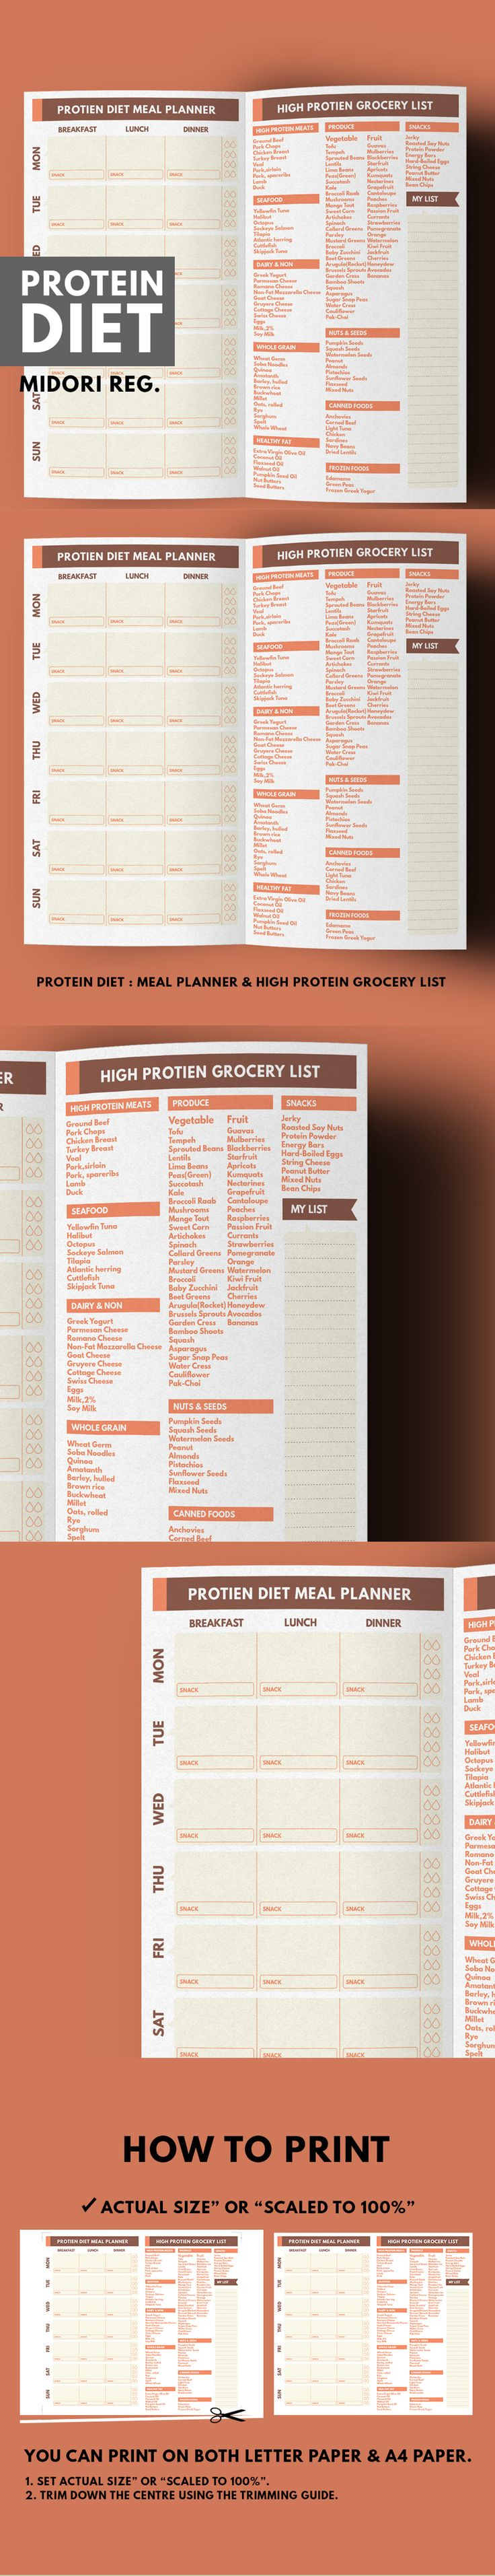 Are you on Protein Diet Plan? This is a High Protein Grocery list and Meal Planner which help your grocery shopping easier than ever! Each food categories contain list of High Protein Nutrient and also Low Carb and Low Calories too!  You can plan your menu before go shopping by Meal Planner on the left page while consider the grocery list of high protein nutrient on the right page